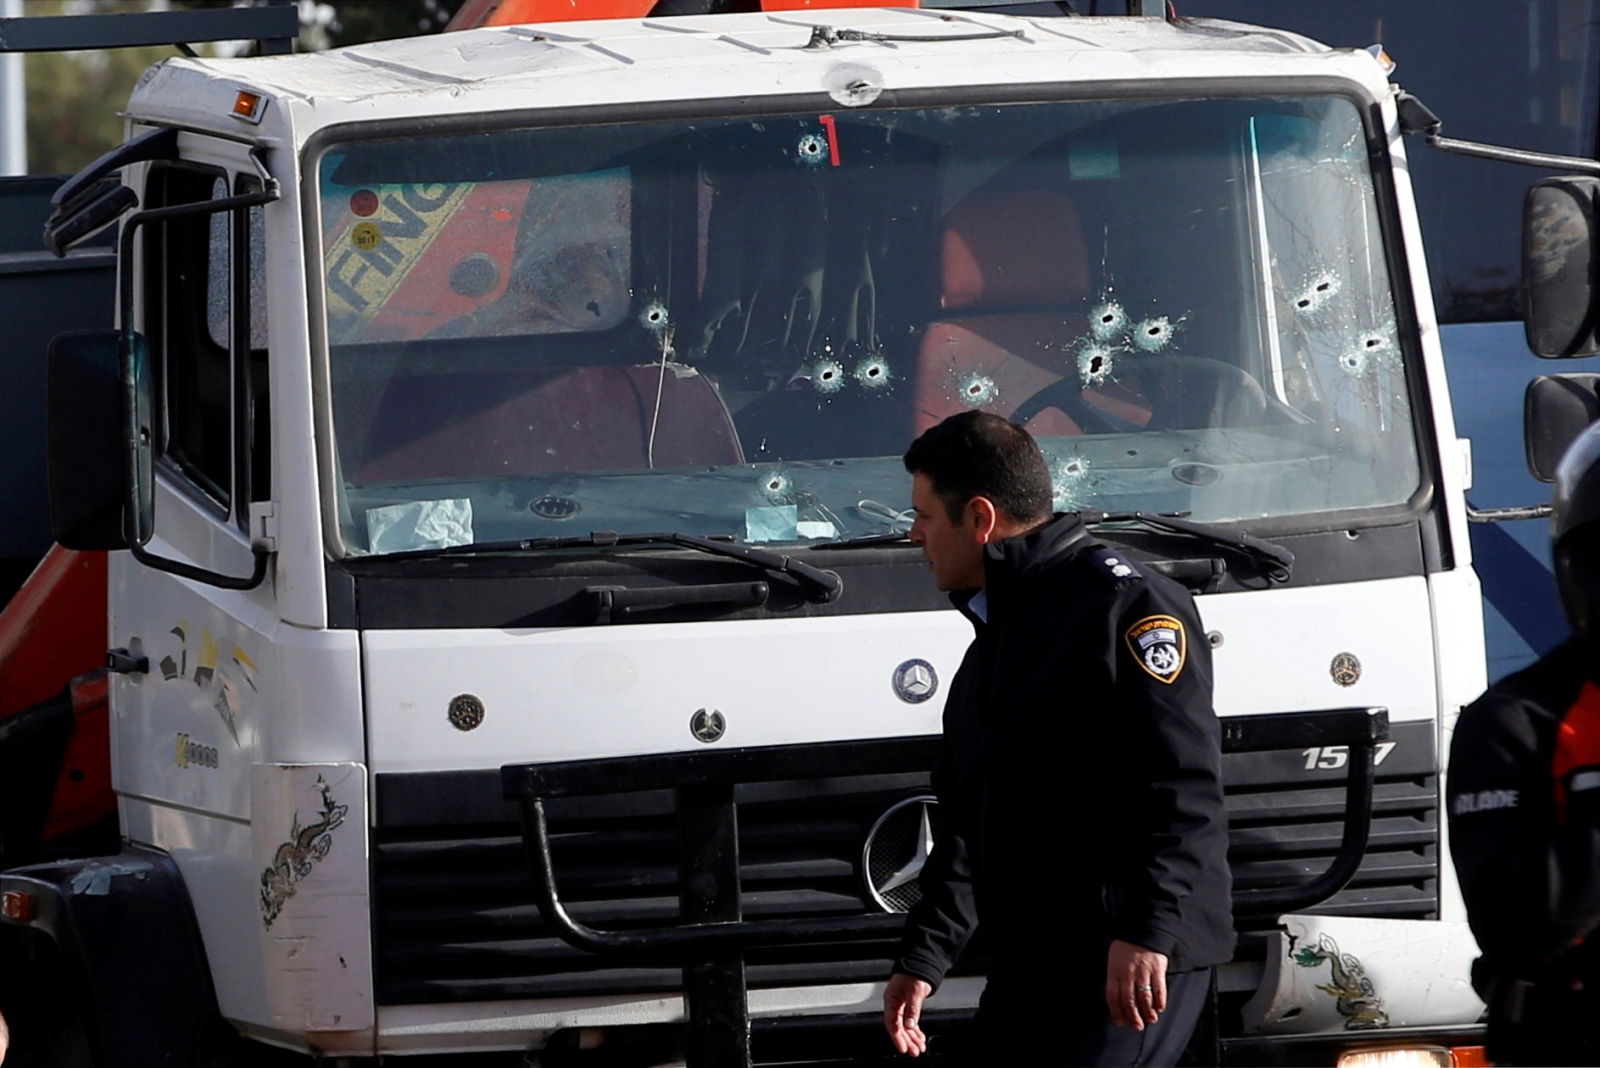 Truck-ramming incident in Jerusalem